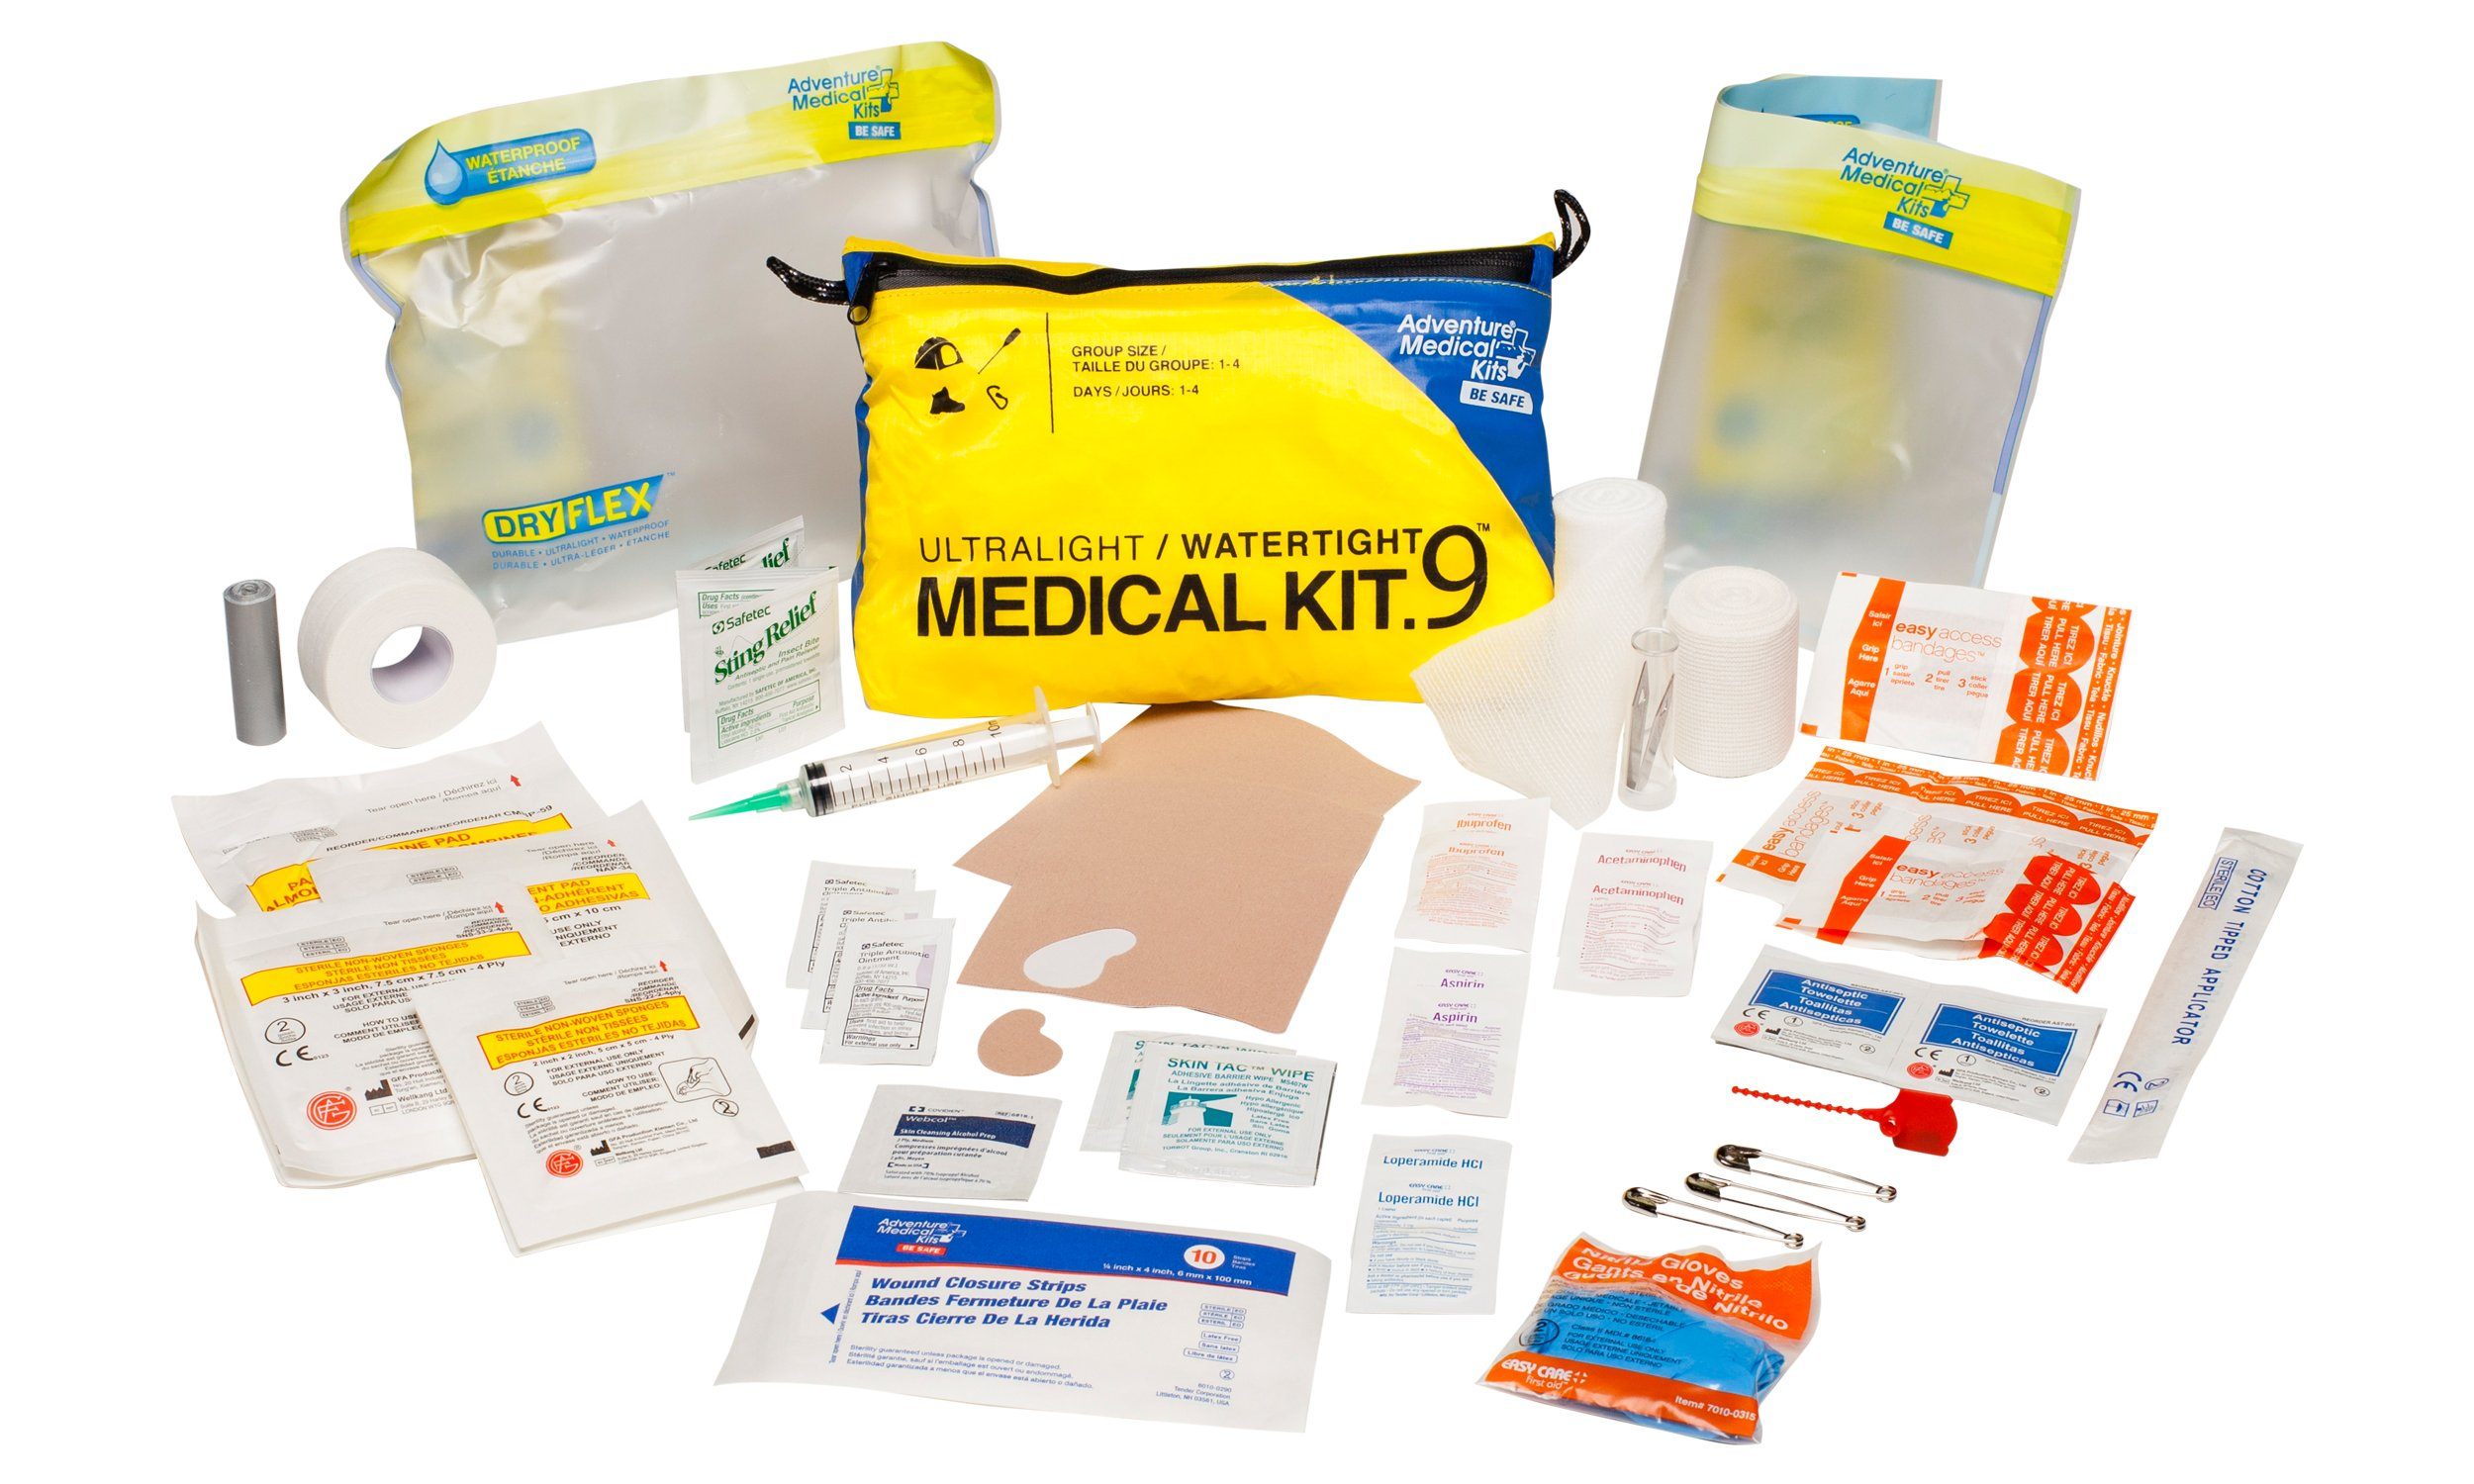 Adventure Medical Kits Ultralight and Watertight .9 First Aid Kit by Adventure Medical Kits (Image #1)